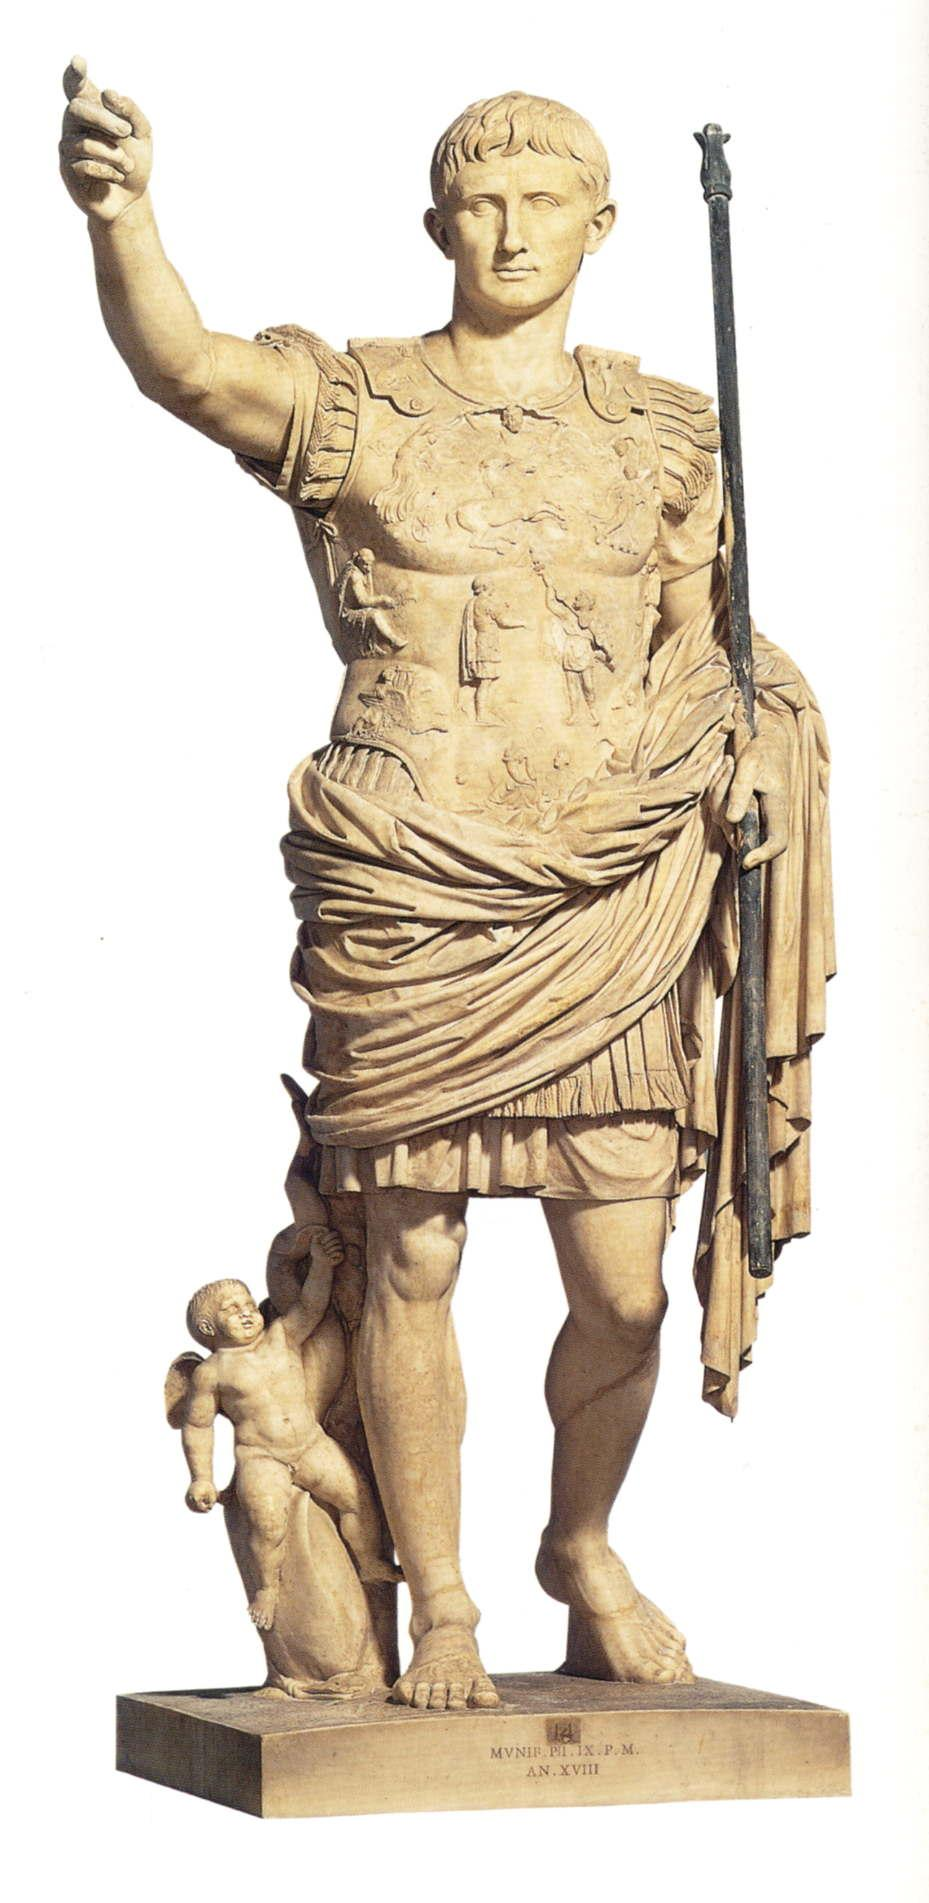 augustus of prima port an imperial deification Essay examples search essay examples browse by category browse by type augustus of prima porta that has been the subject of many scholarly discussion 953 words augustus of prima port: an imperial deification 1,174 words 3 pages.